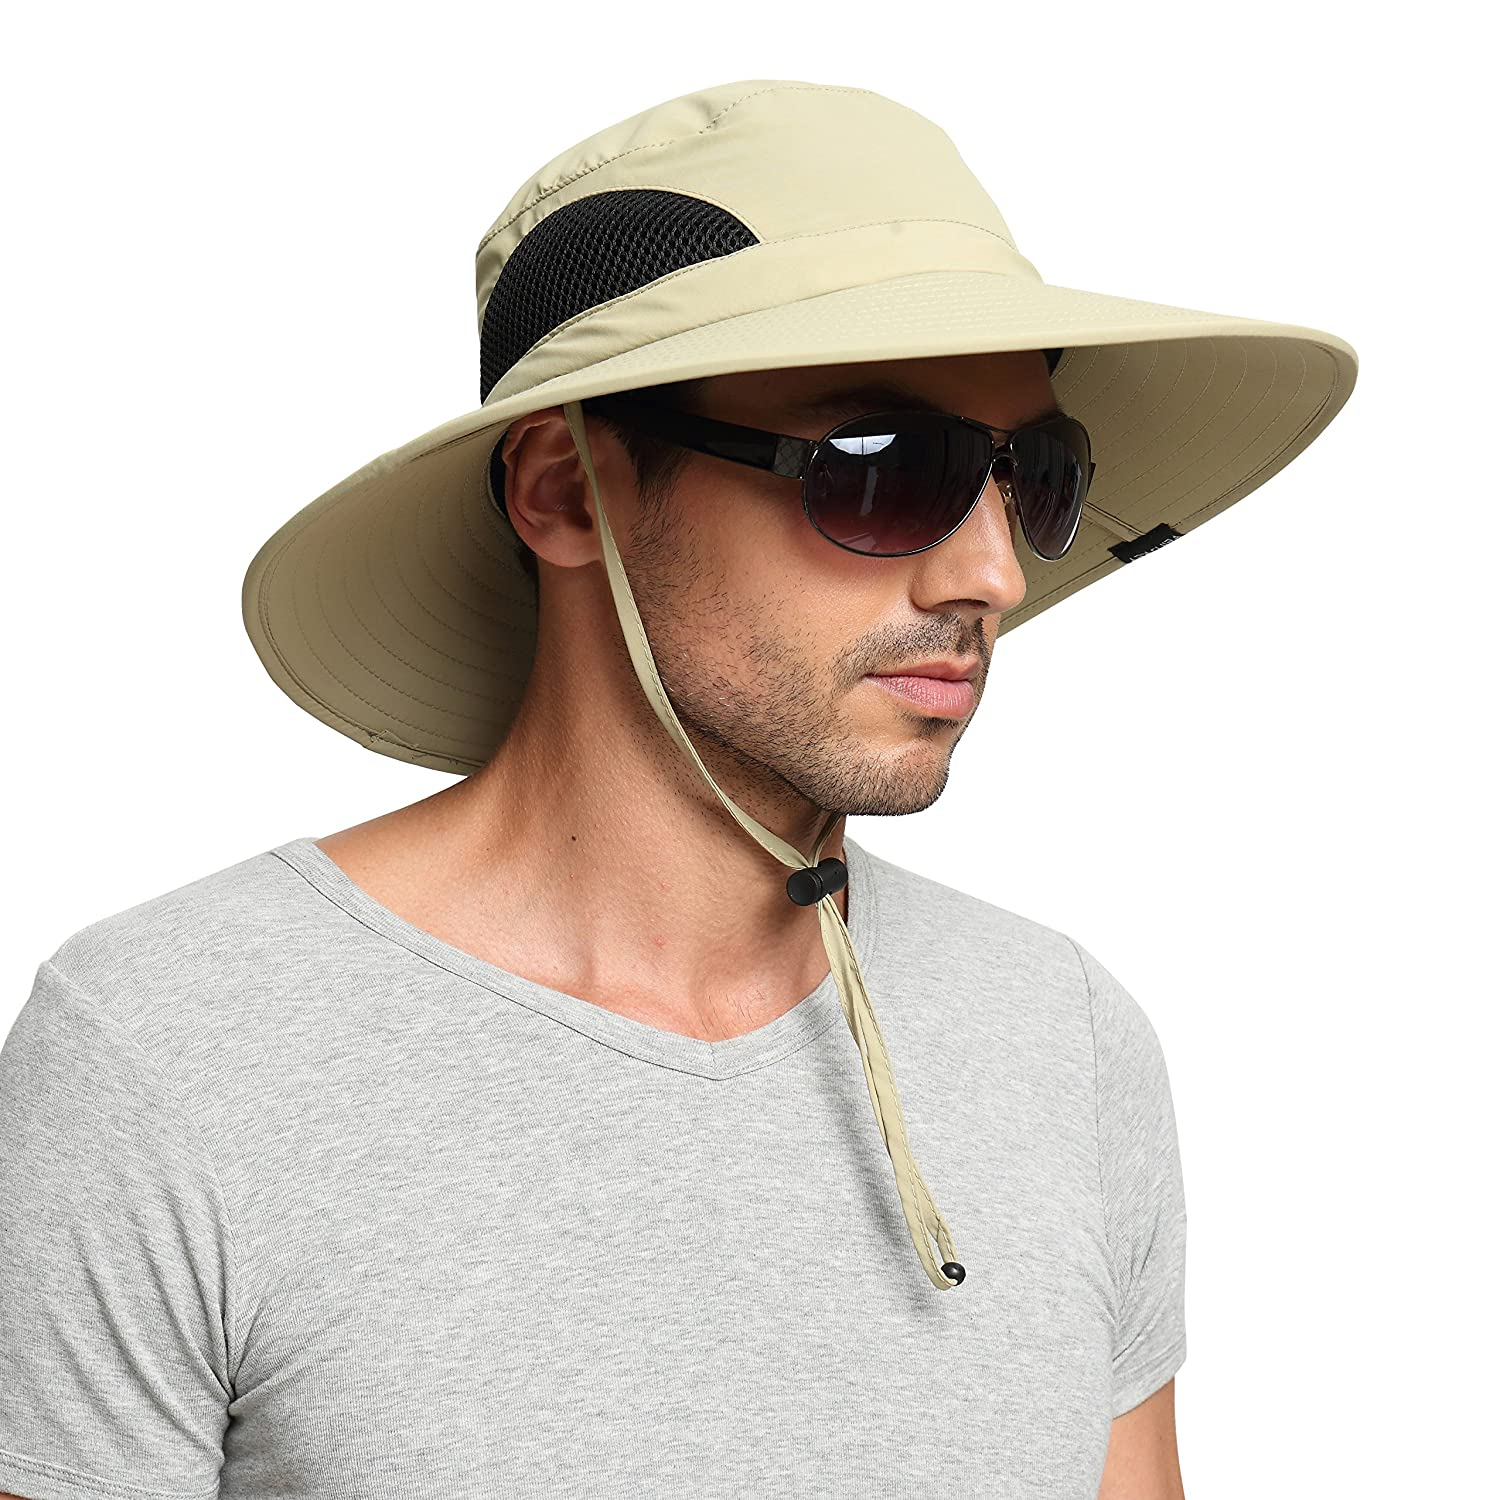 d16c9cbd2 EINSKEY Sun Hat for Men/Women, Summer Outdoor Sun Protection Wide Brim  Bucket Hat Waterproof Breathable Packable Boonie Hat for Safari Fishing  Hiking ...